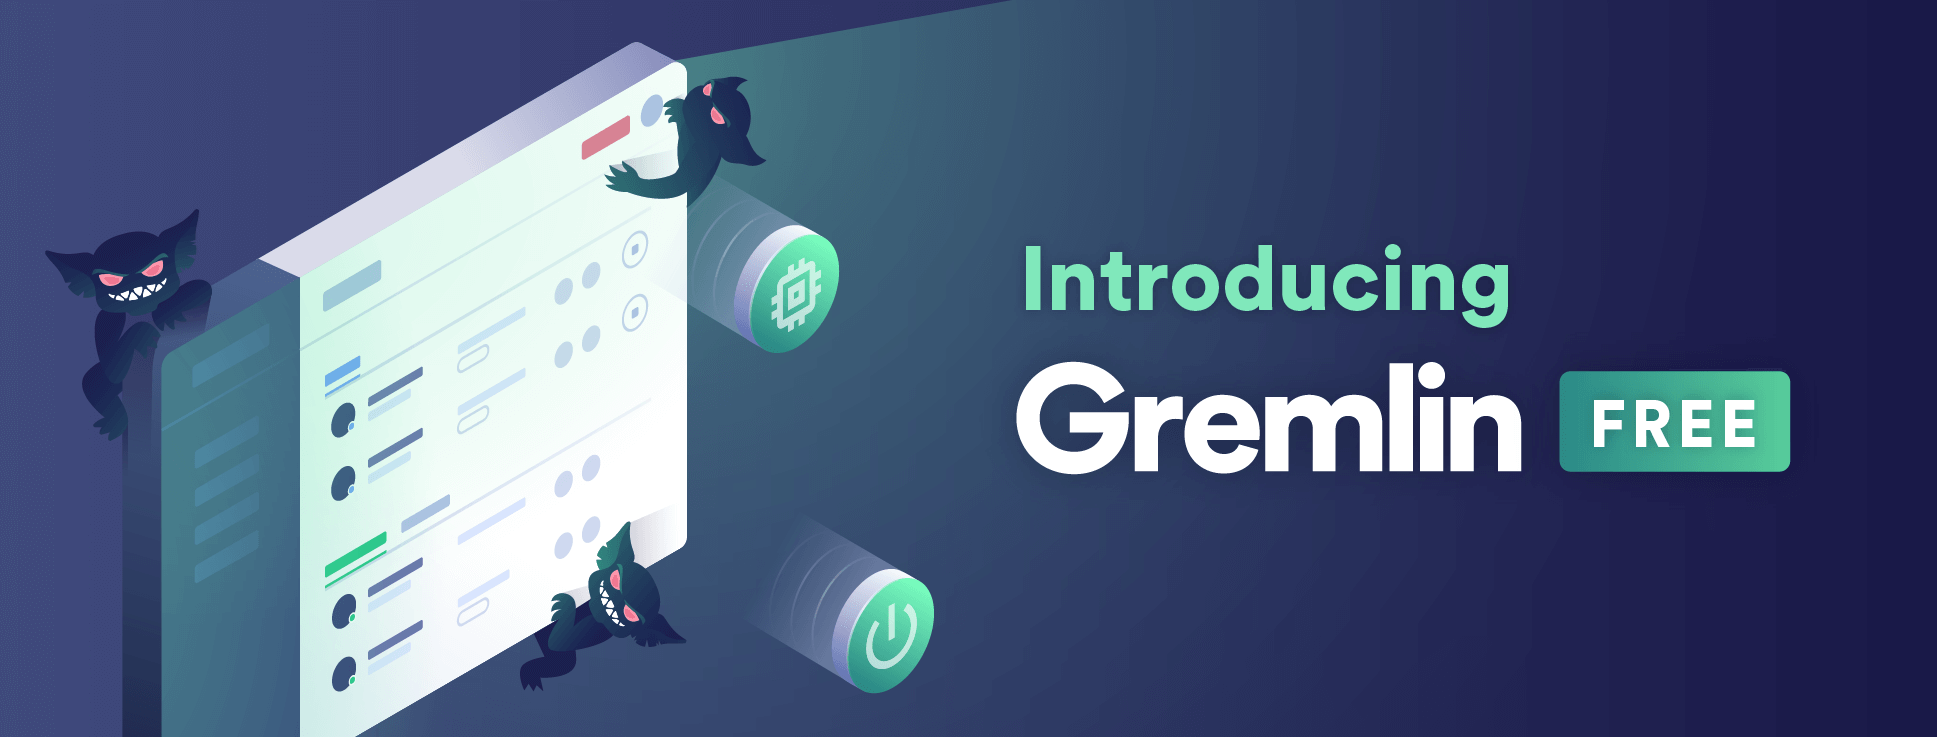 Introducing Gremlin Free